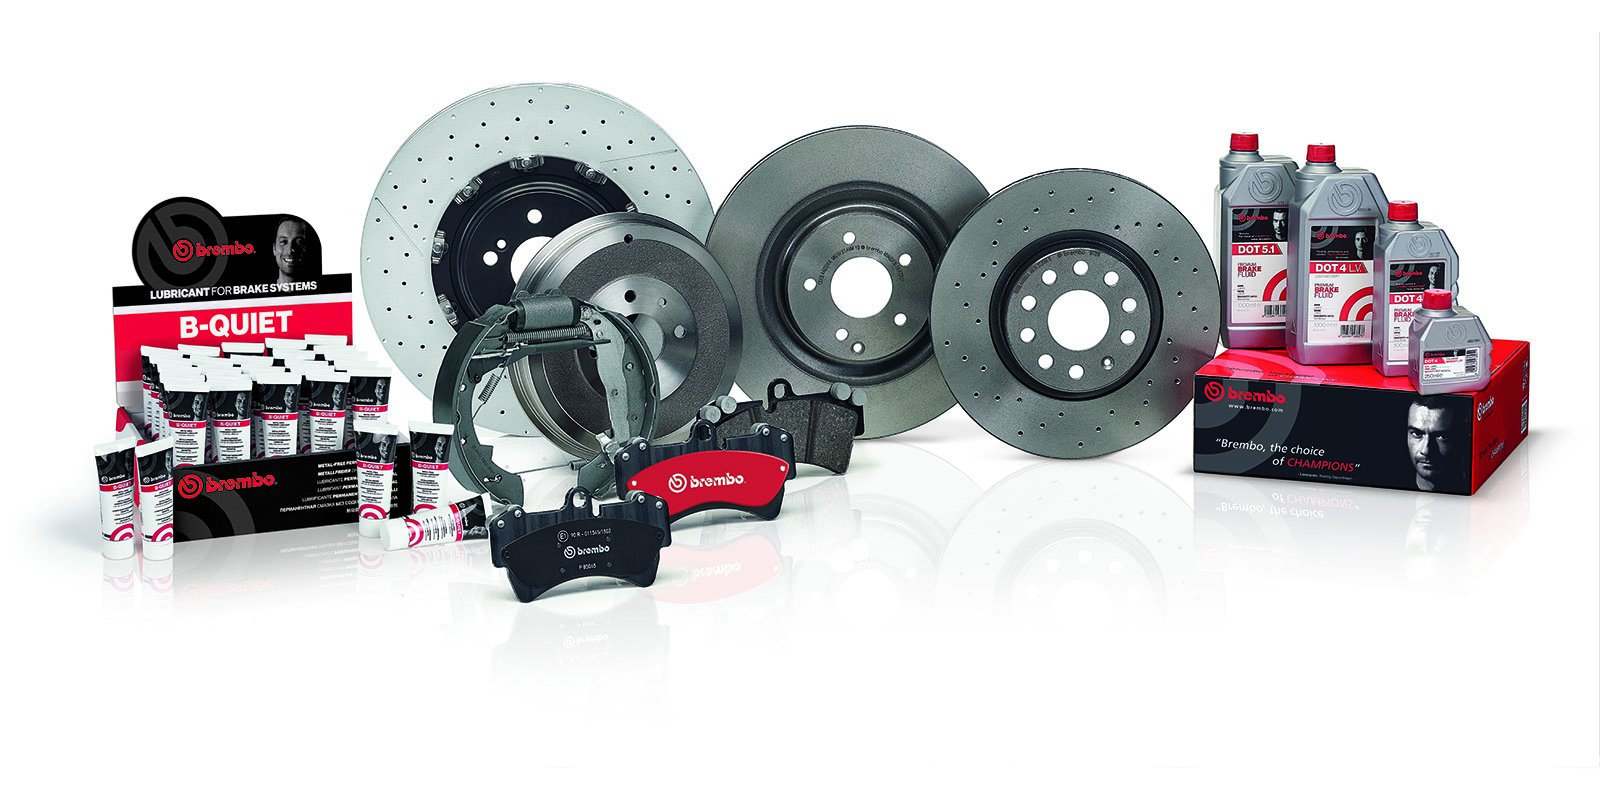 Newparts.com Launches Complete Line of Brembo Aftermarket Program